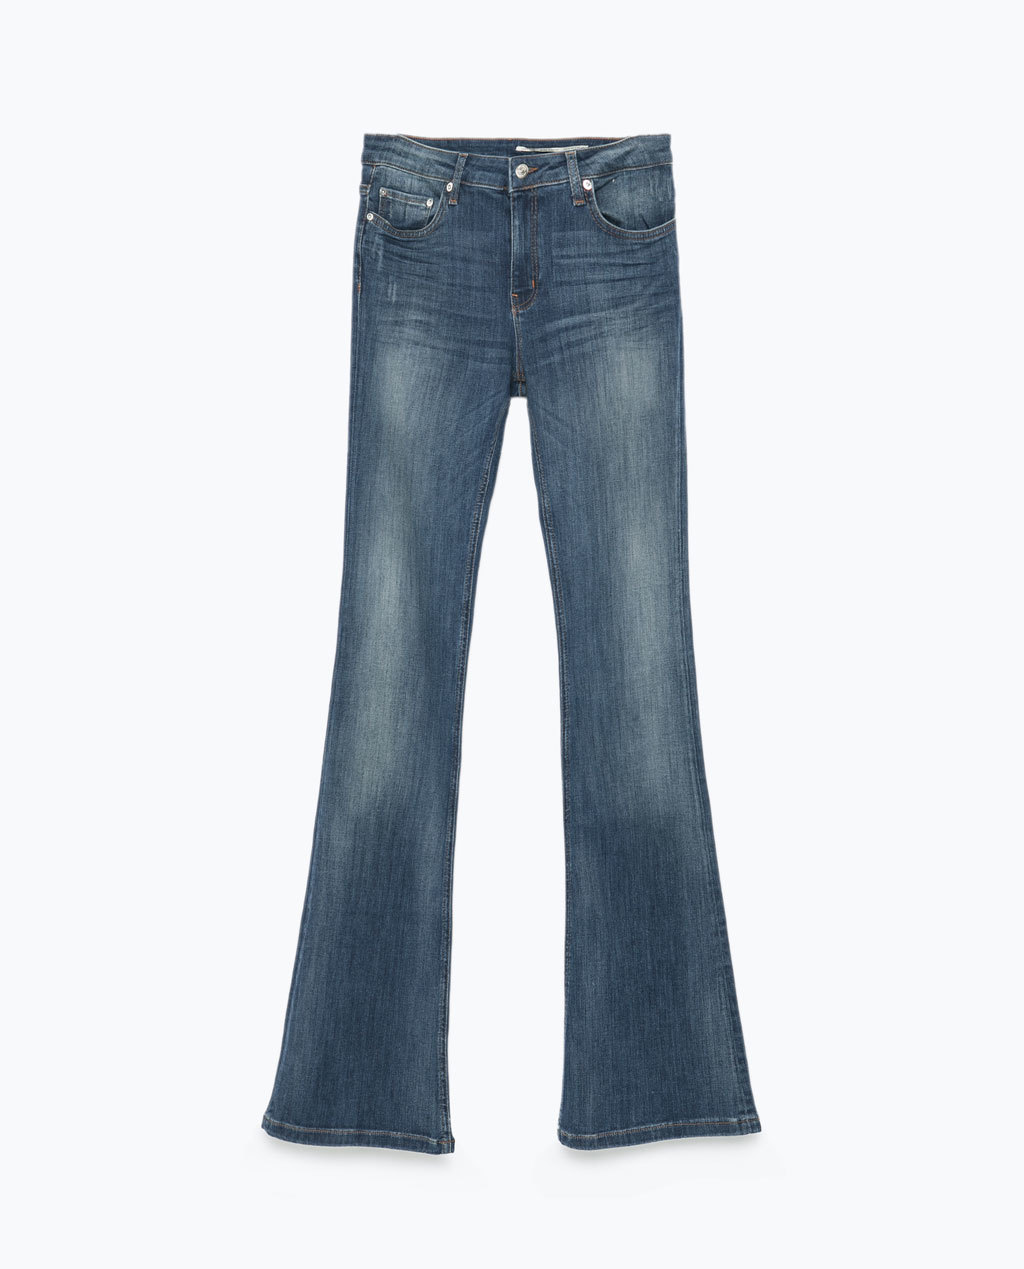 Flared Jeans - style: flares; length: standard; pattern: plain; pocket detail: traditional 5 pocket; waist: mid/regular rise; predominant colour: navy; occasions: casual; fibres: cotton - stretch; jeans detail: shading down centre of thigh, washed/faded; texture group: denim; pattern type: fabric; trends: seventies retro; season: s/s 2015; wardrobe: basic